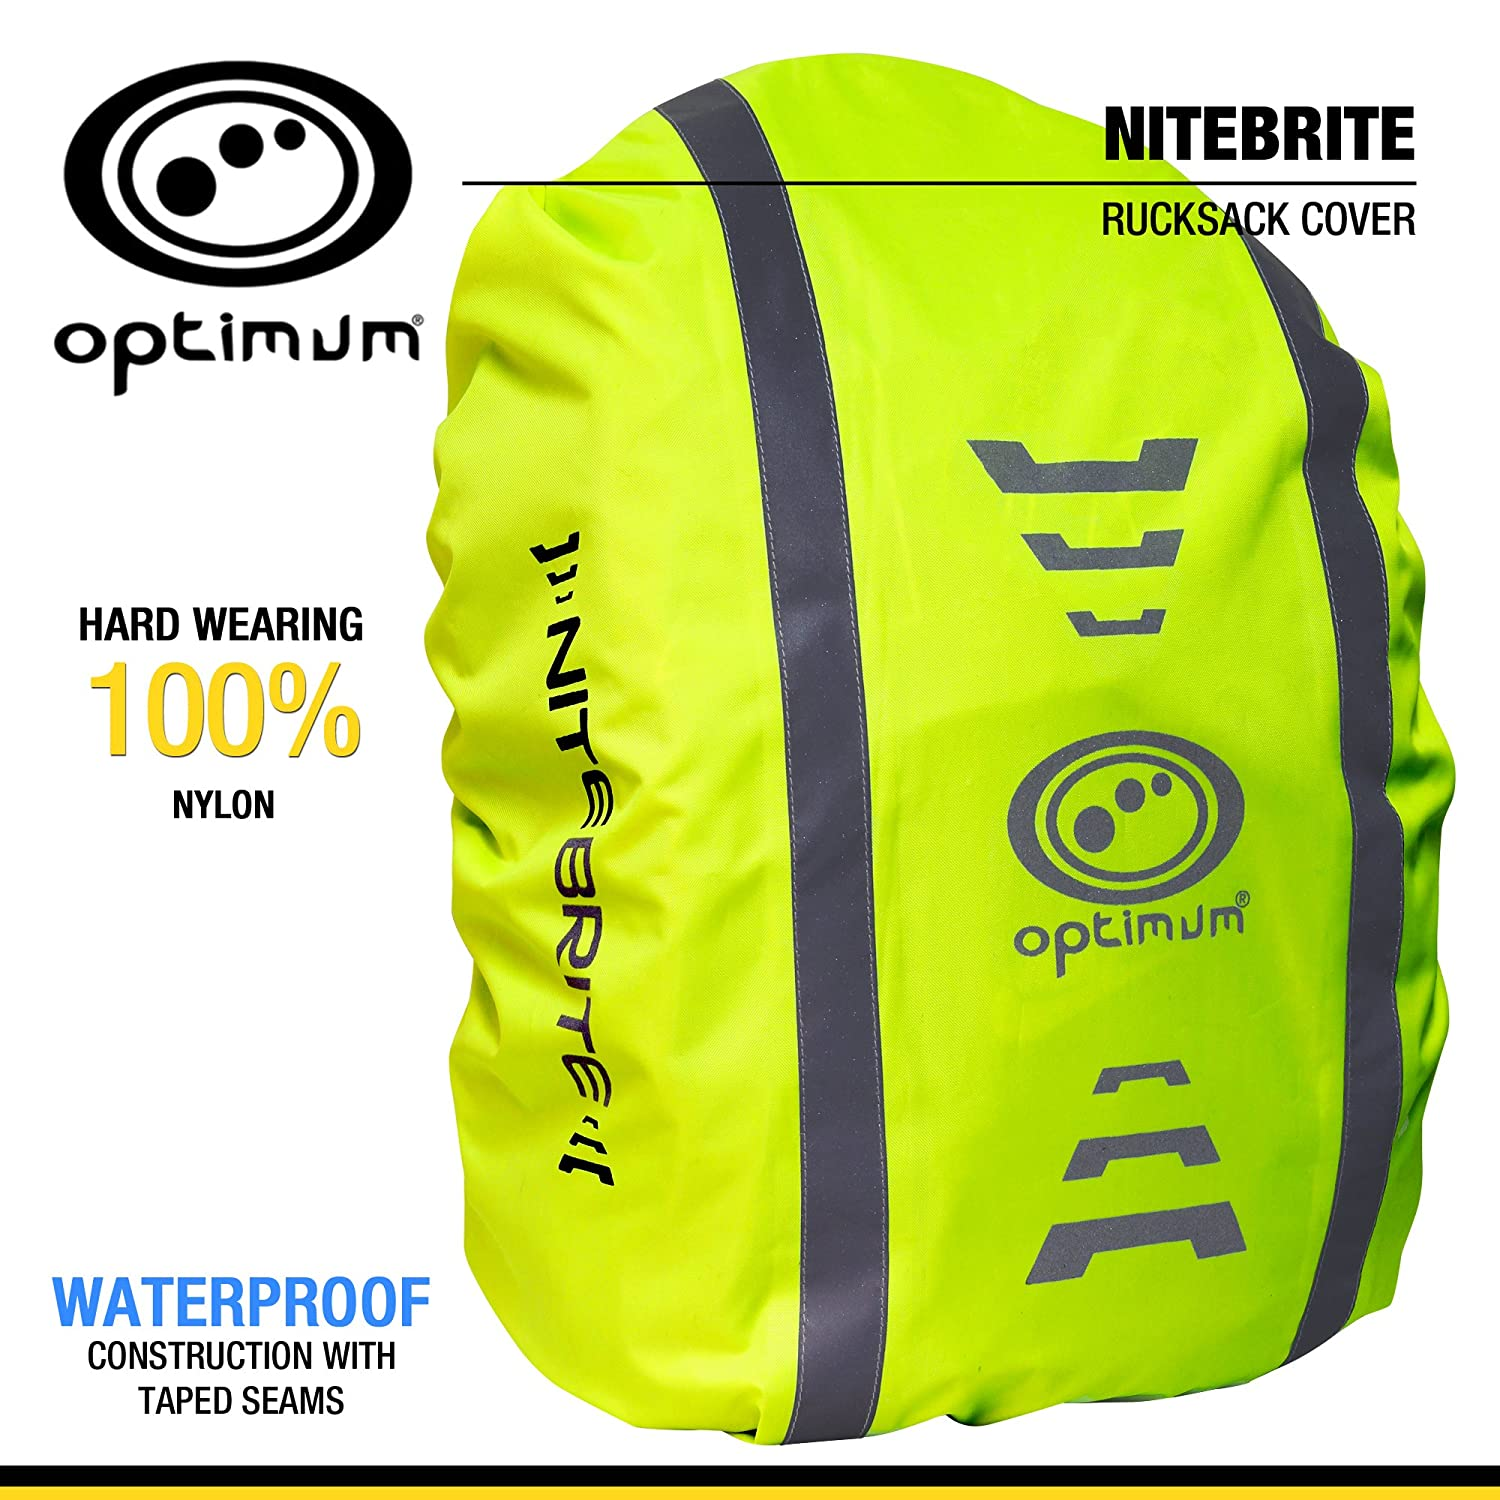 Optimum Nitebrite Cycling Rucksack Cover, Fluro Green, One Size CNBBC